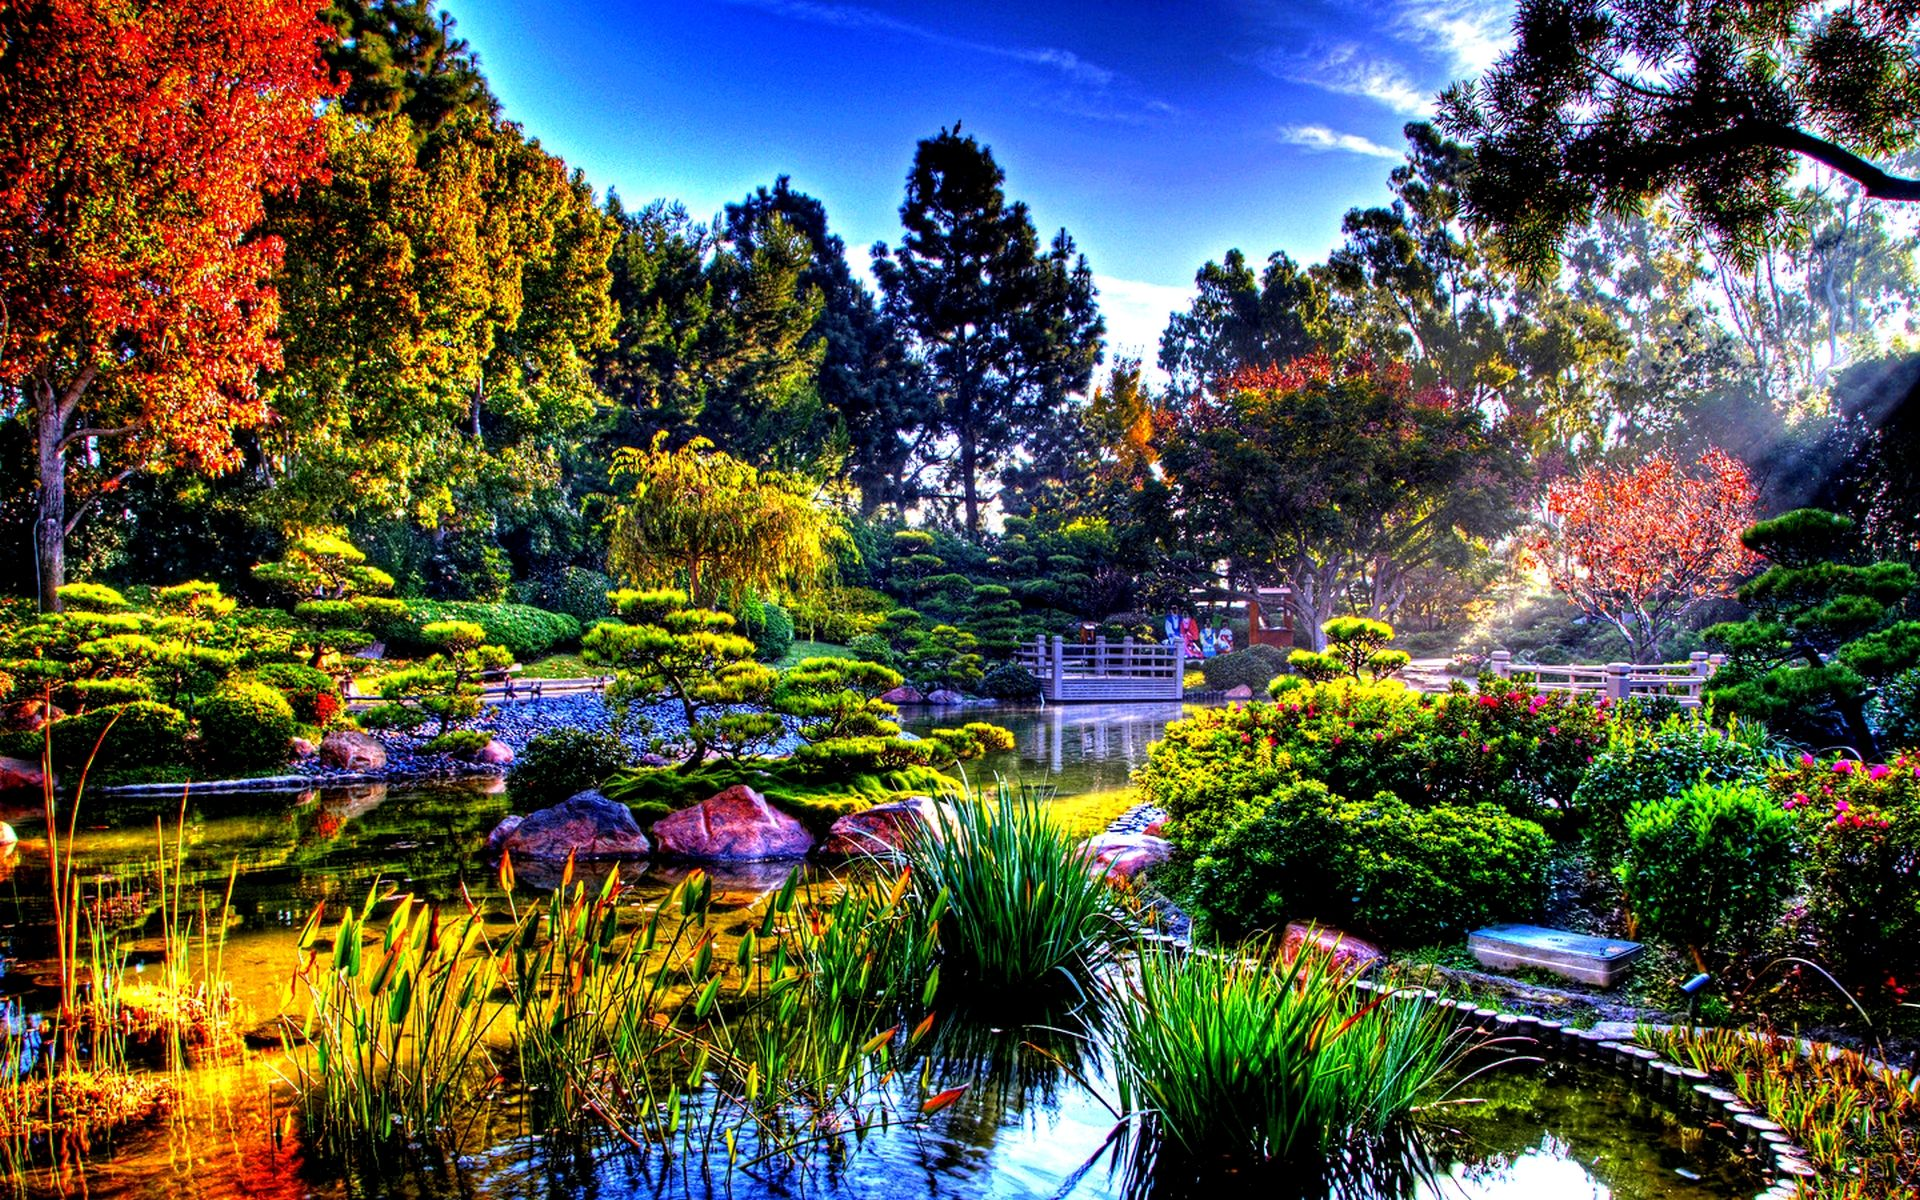 Spring japanese garden wallpaper design awesome 36205 for Beautiful garden images hd